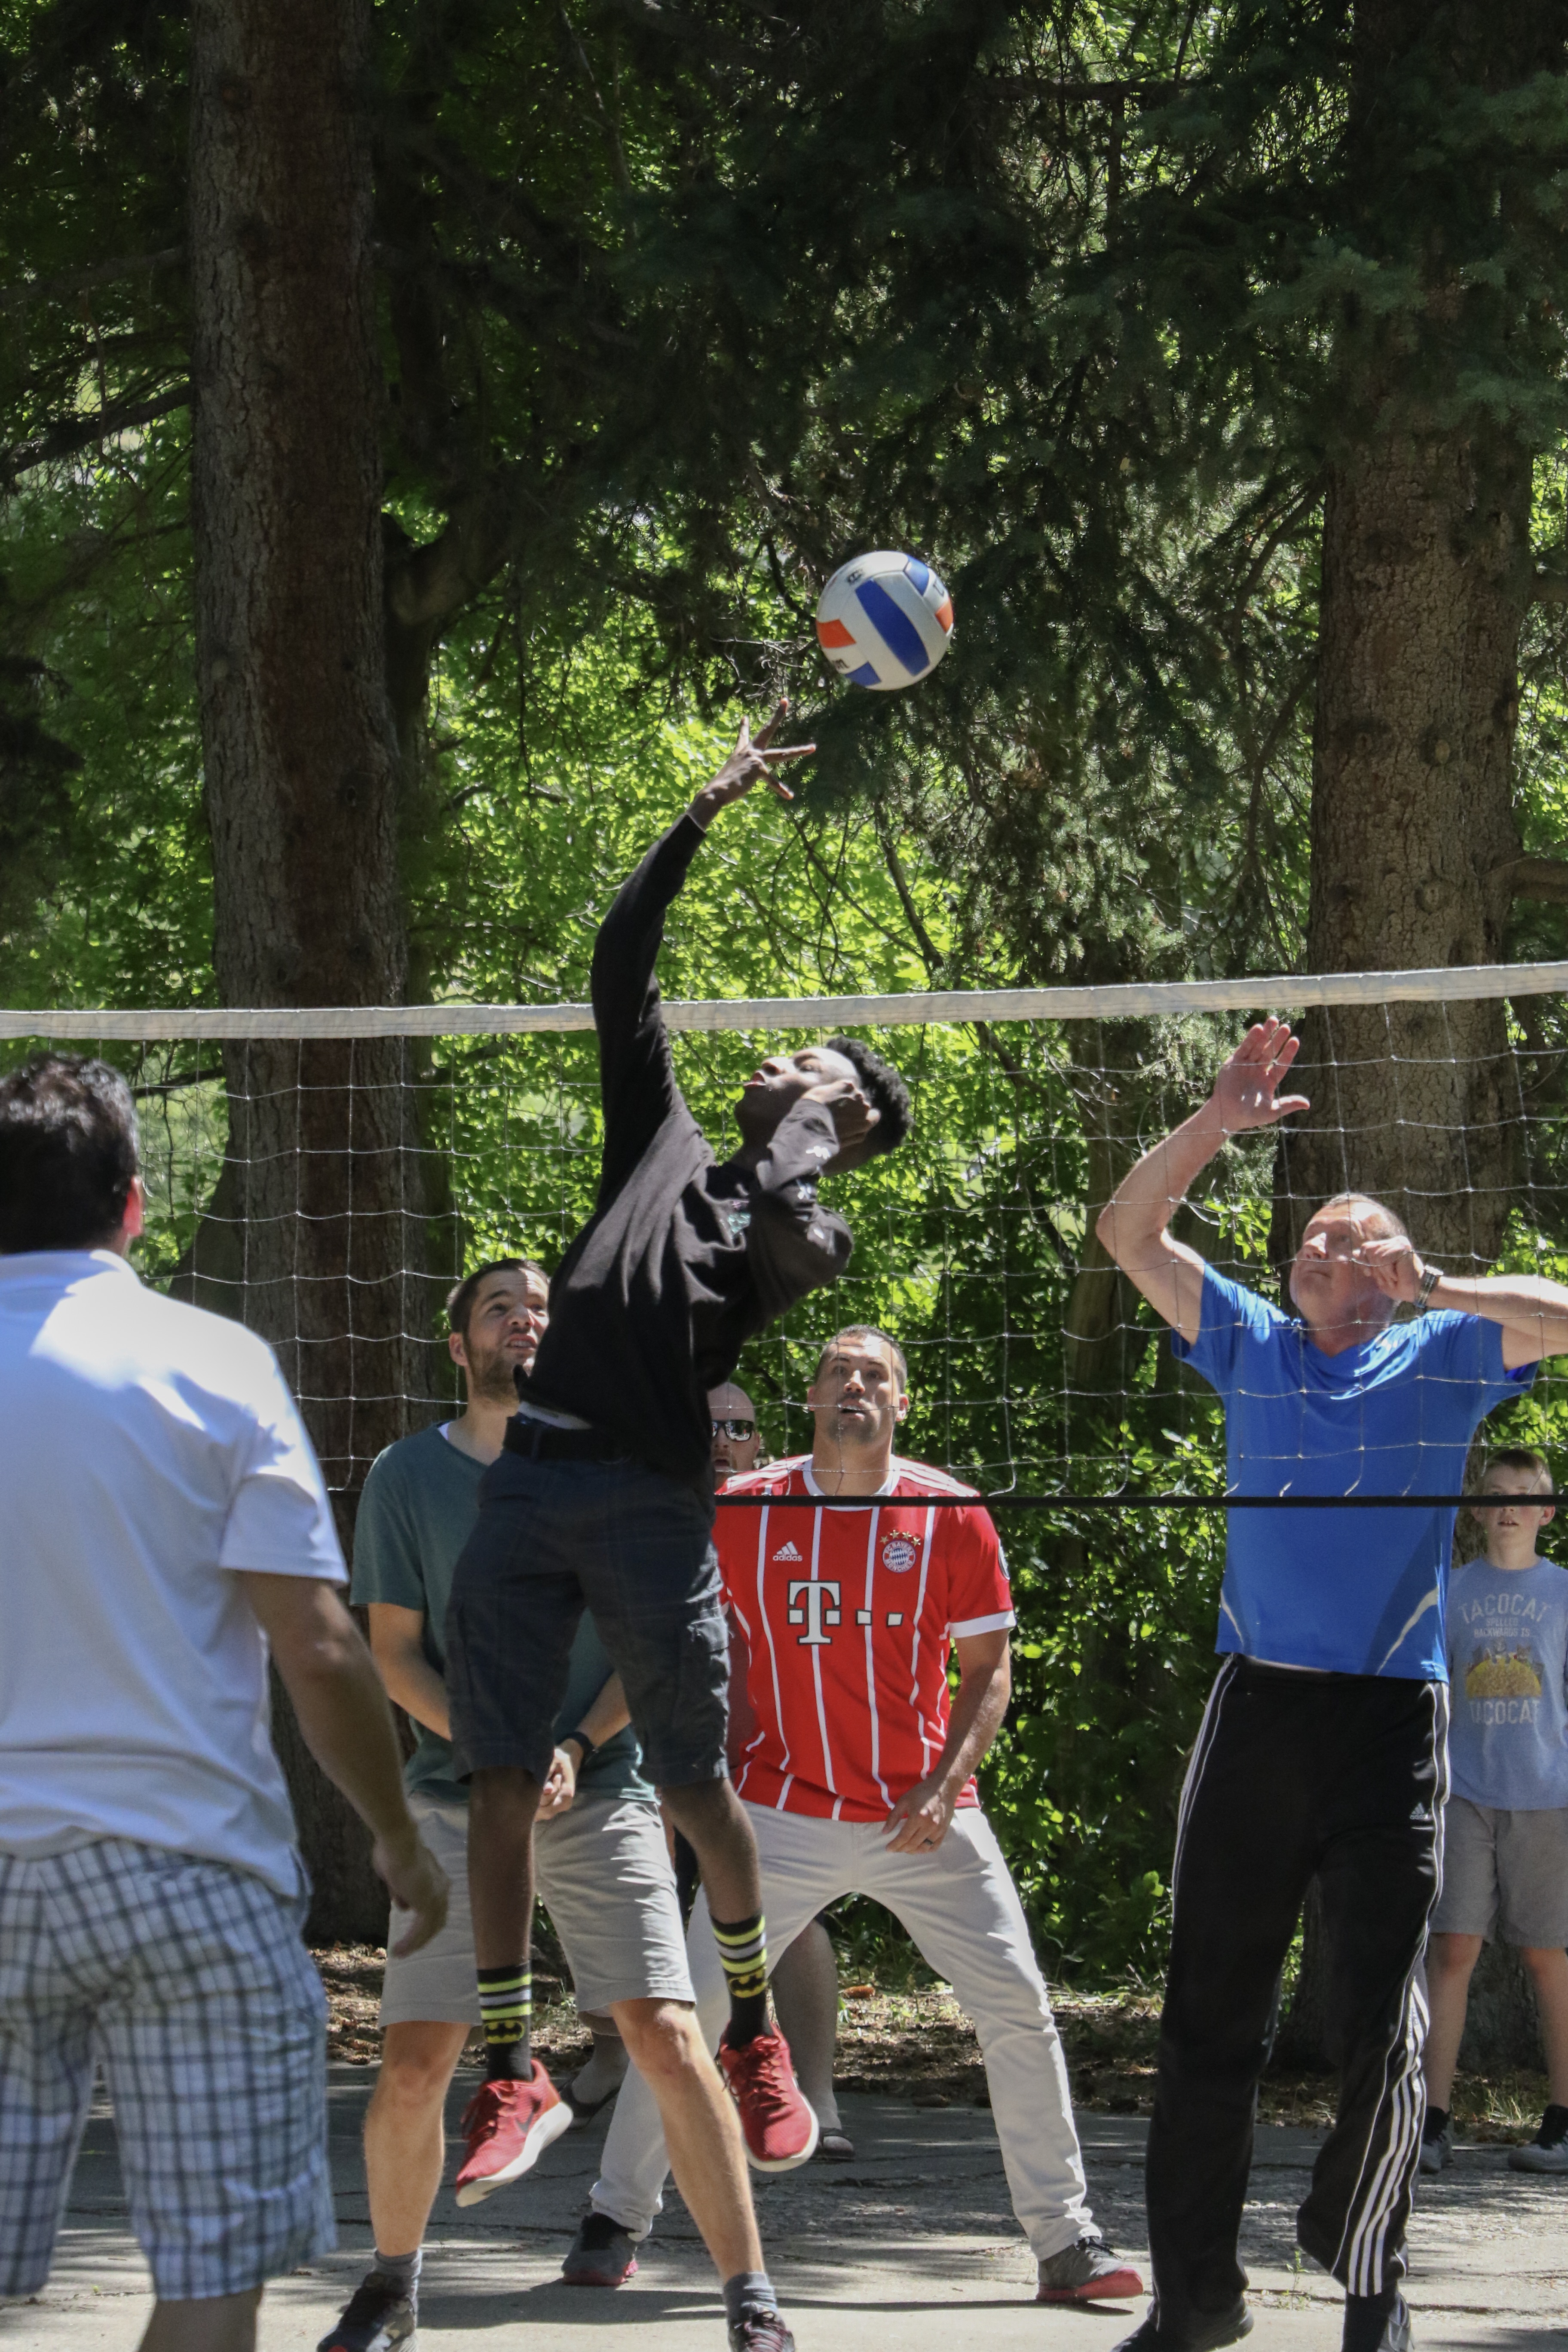 Members of the German Speaking Ward and family and friends play volleyball at the annual ward picnic at Washington Terrace Park in Parley's Canyon, Utah, on July 13, 2019.